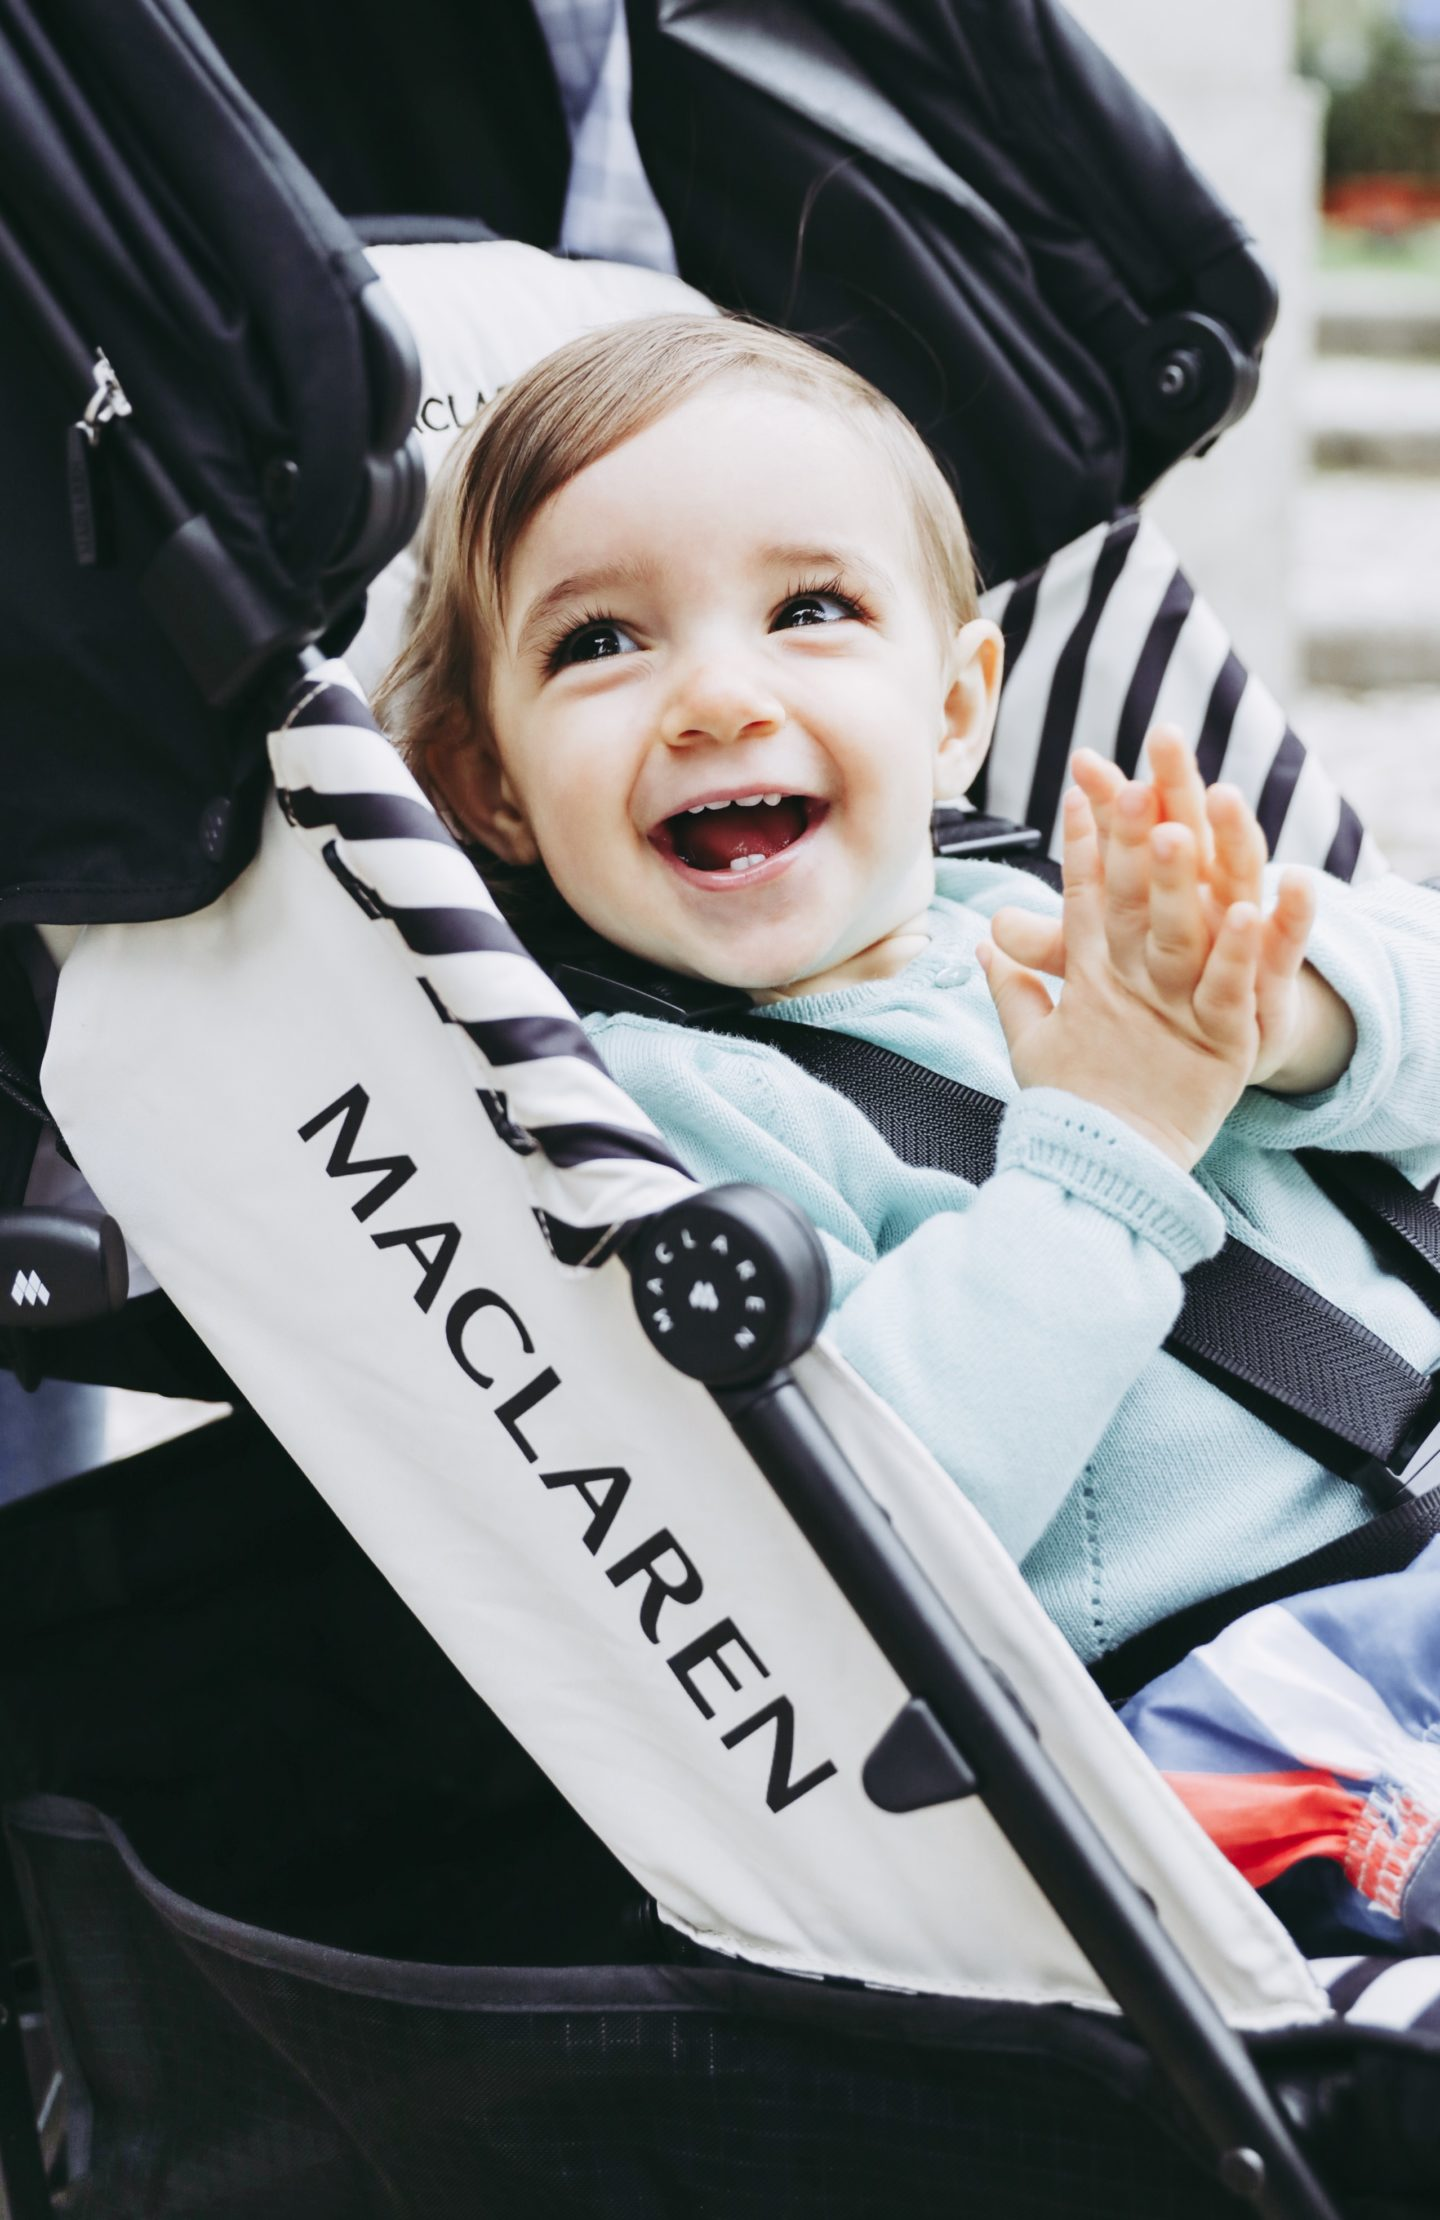 Why You Need A Lightweight Stroller In Your Life - Baby in Maclaren Quest stroller - thecasualfree.com